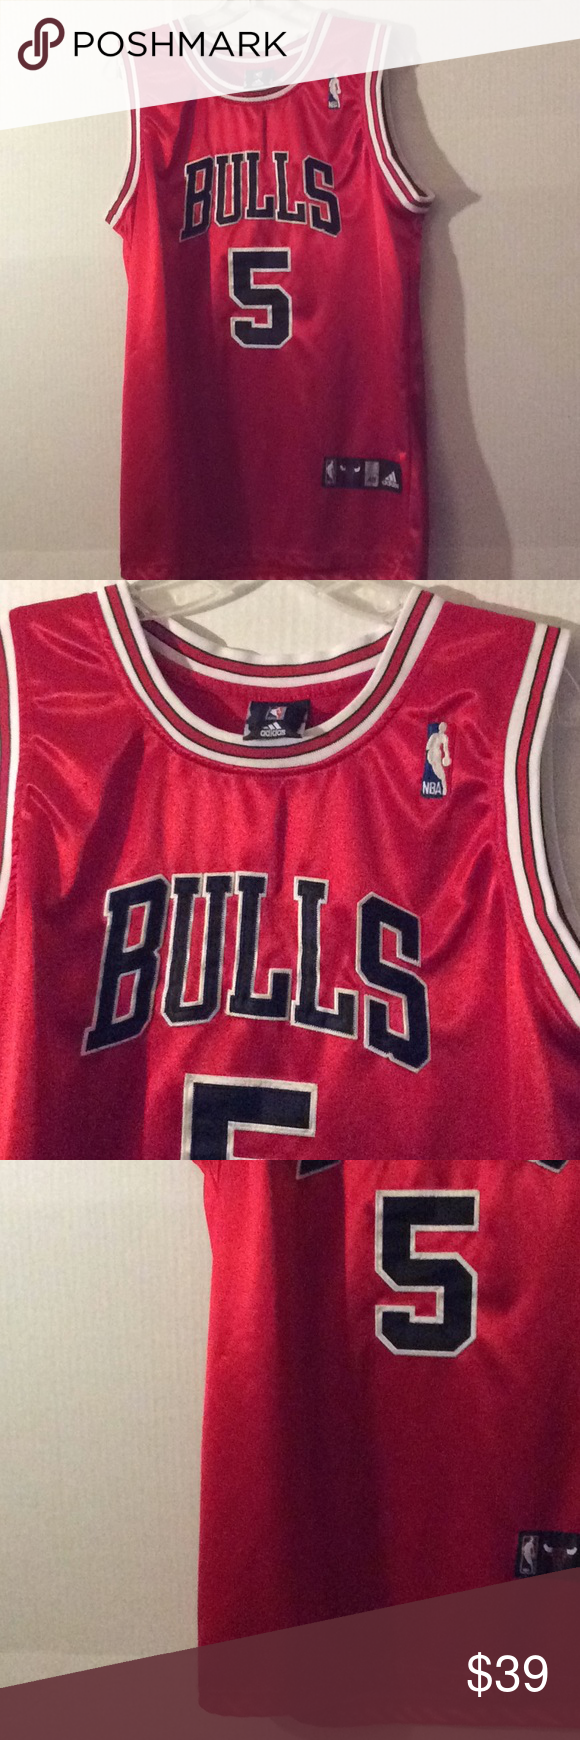 Adidas NBA Red Chicago Bulls Boozer 5 jersey 48L